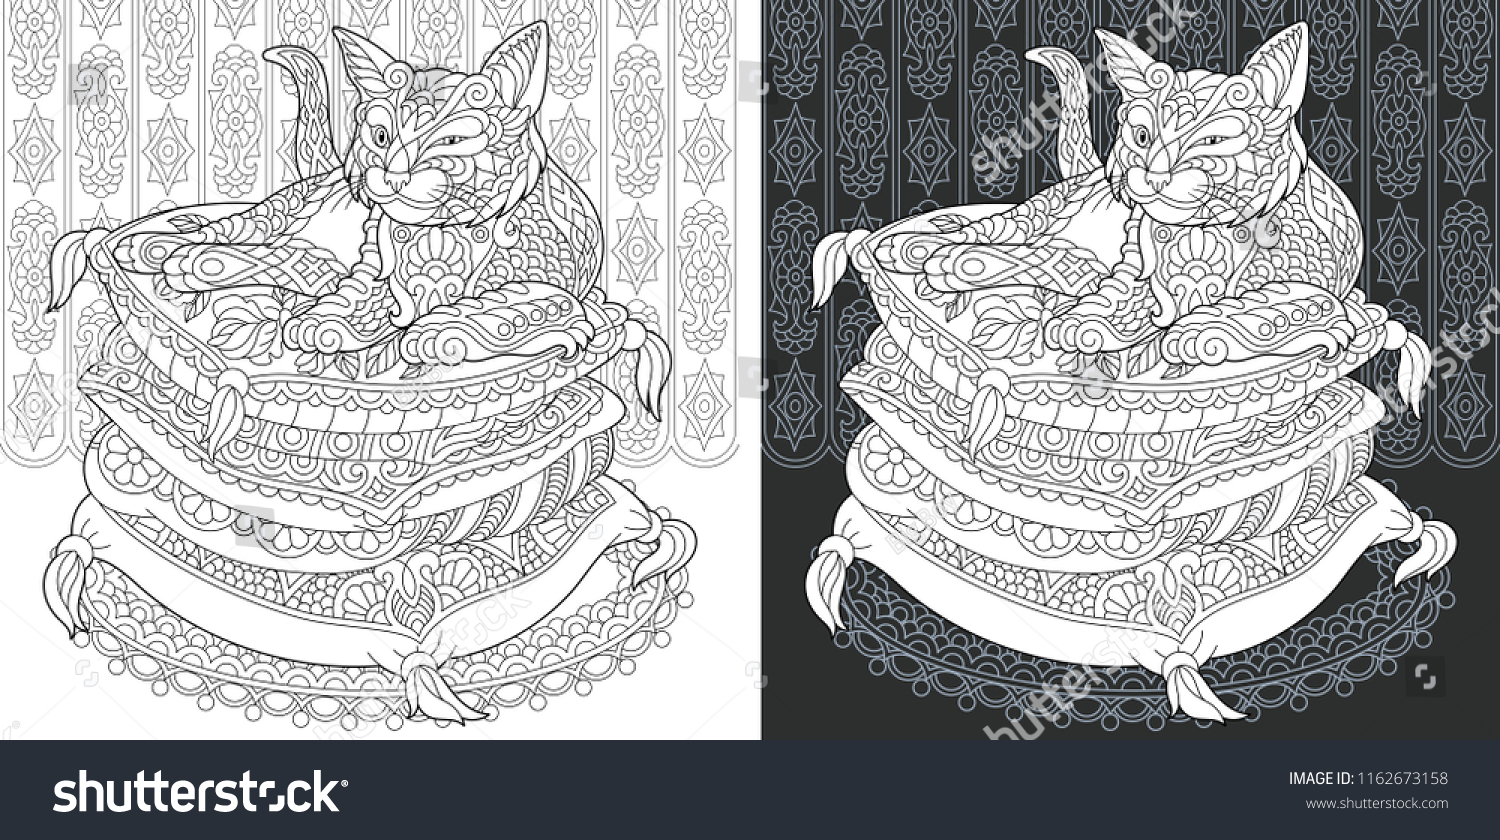 Coloring page coloring book colouring picture with cat drawn in zentangle style antistress